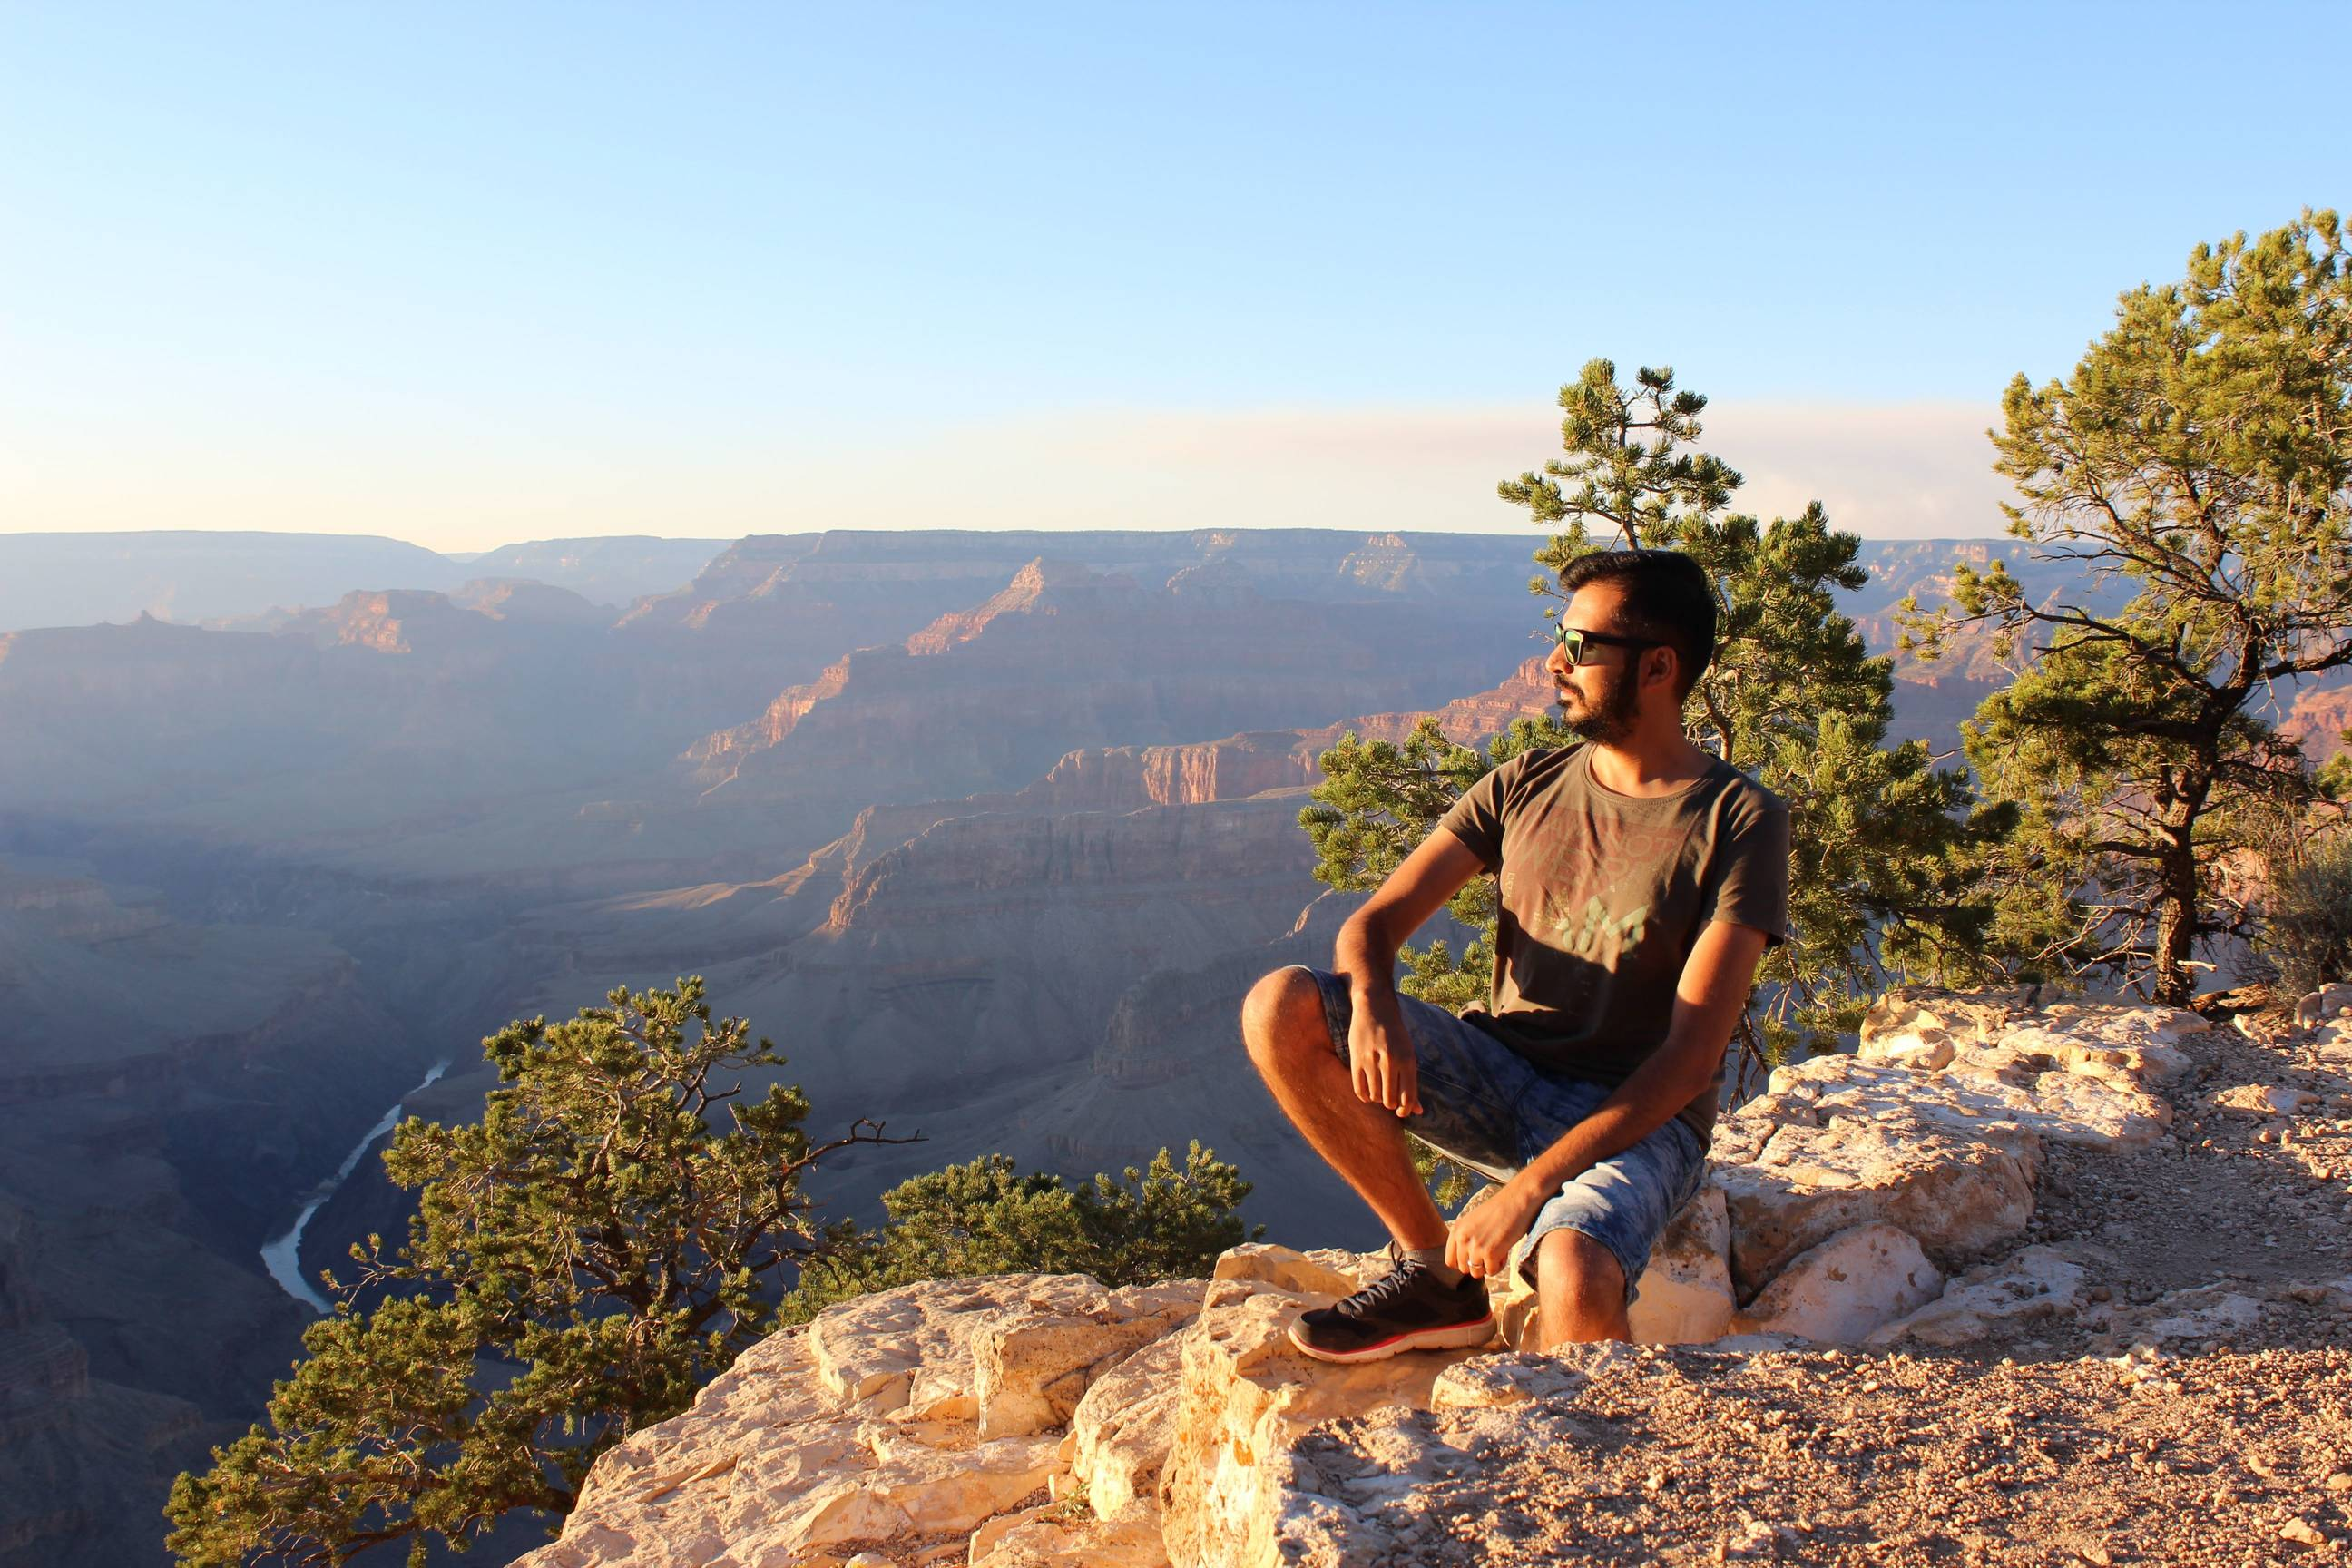 Garry enjoying the sunset at Grand Canyon